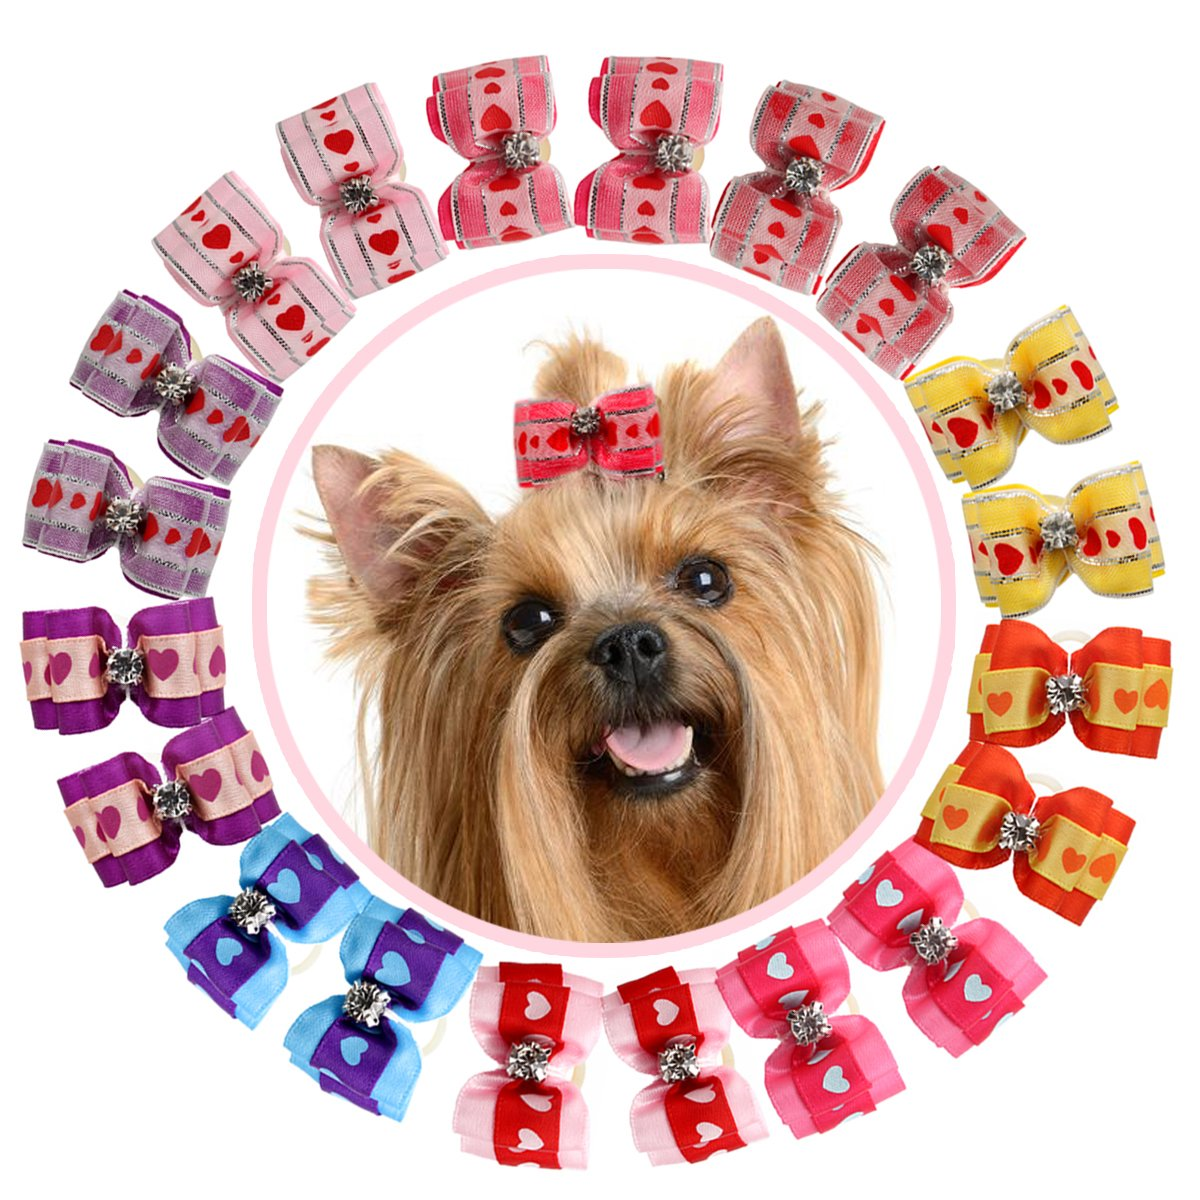 HOLLIHI 20 pcs/10 Pairs Adorable Grosgrain Ribbon Pet Dog Hair Bows with Elastic Rubber Bands – Doggy Kitty Bowknots Topknot Grooming Accessories Set for Long Hair Puppy Cat